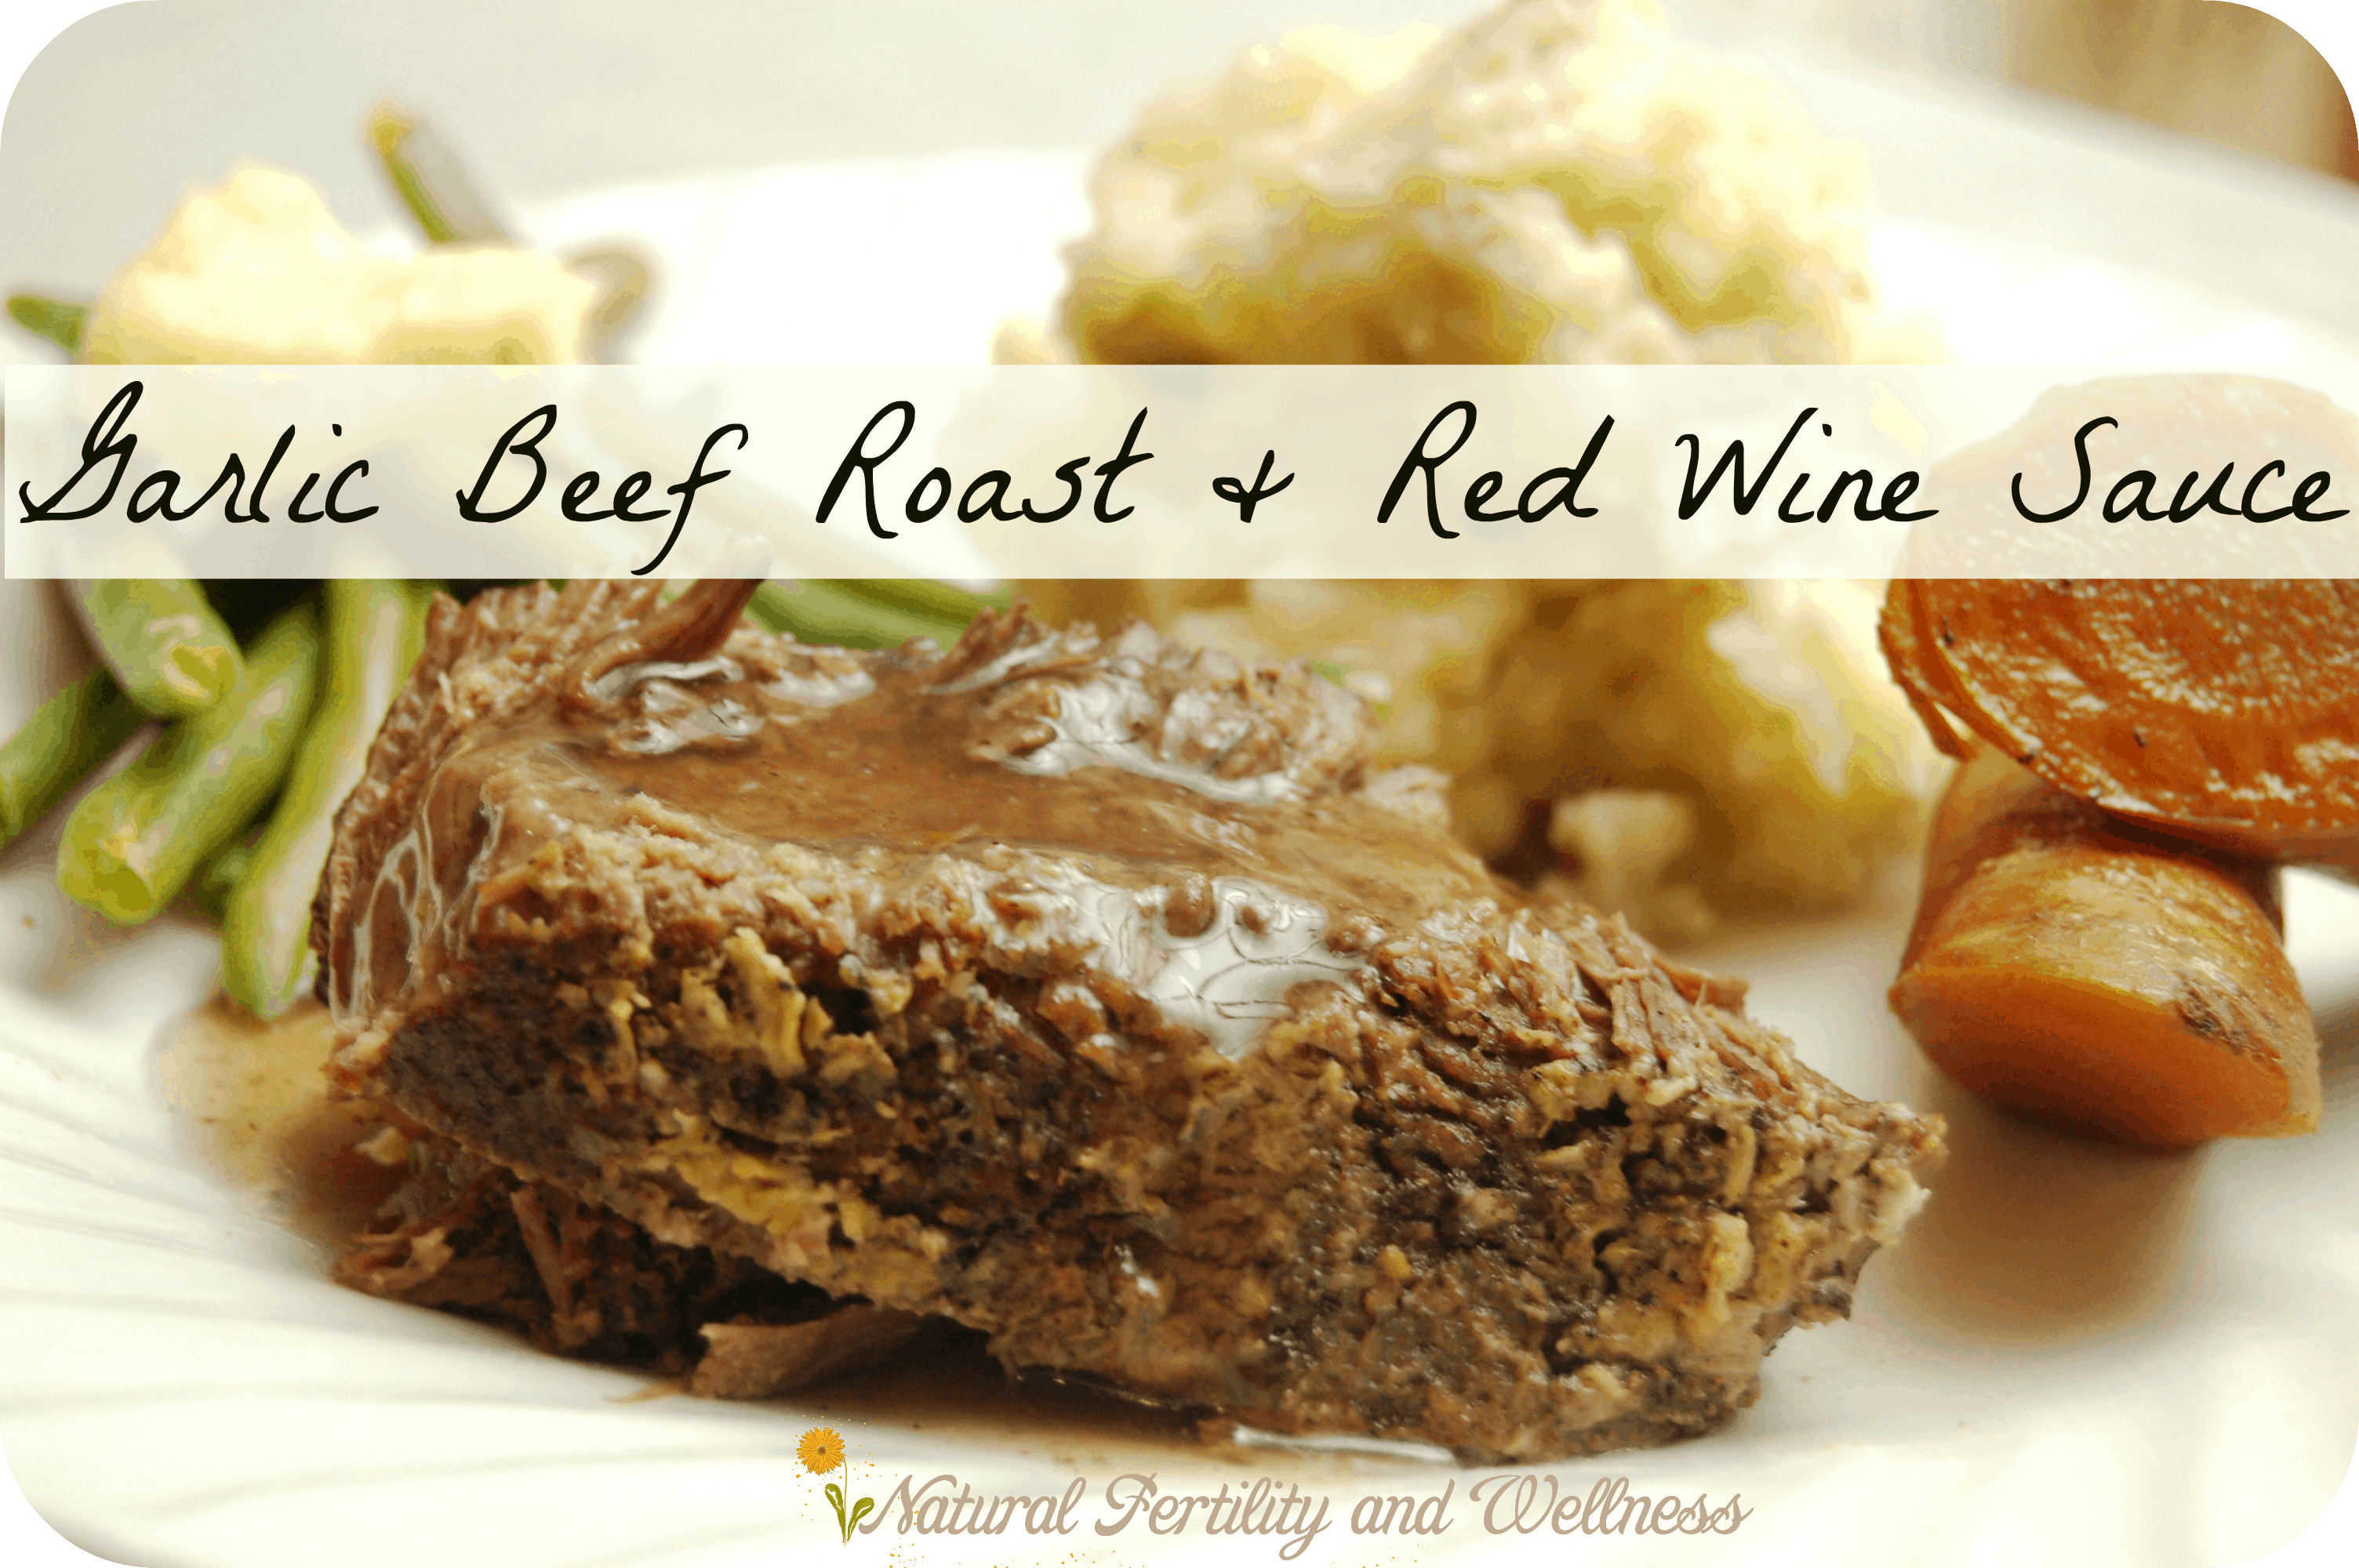 Beef roast made with roasted garlic and covered in a red wine sauce garlic roasted beef roast with red wine sauce forumfinder Image collections